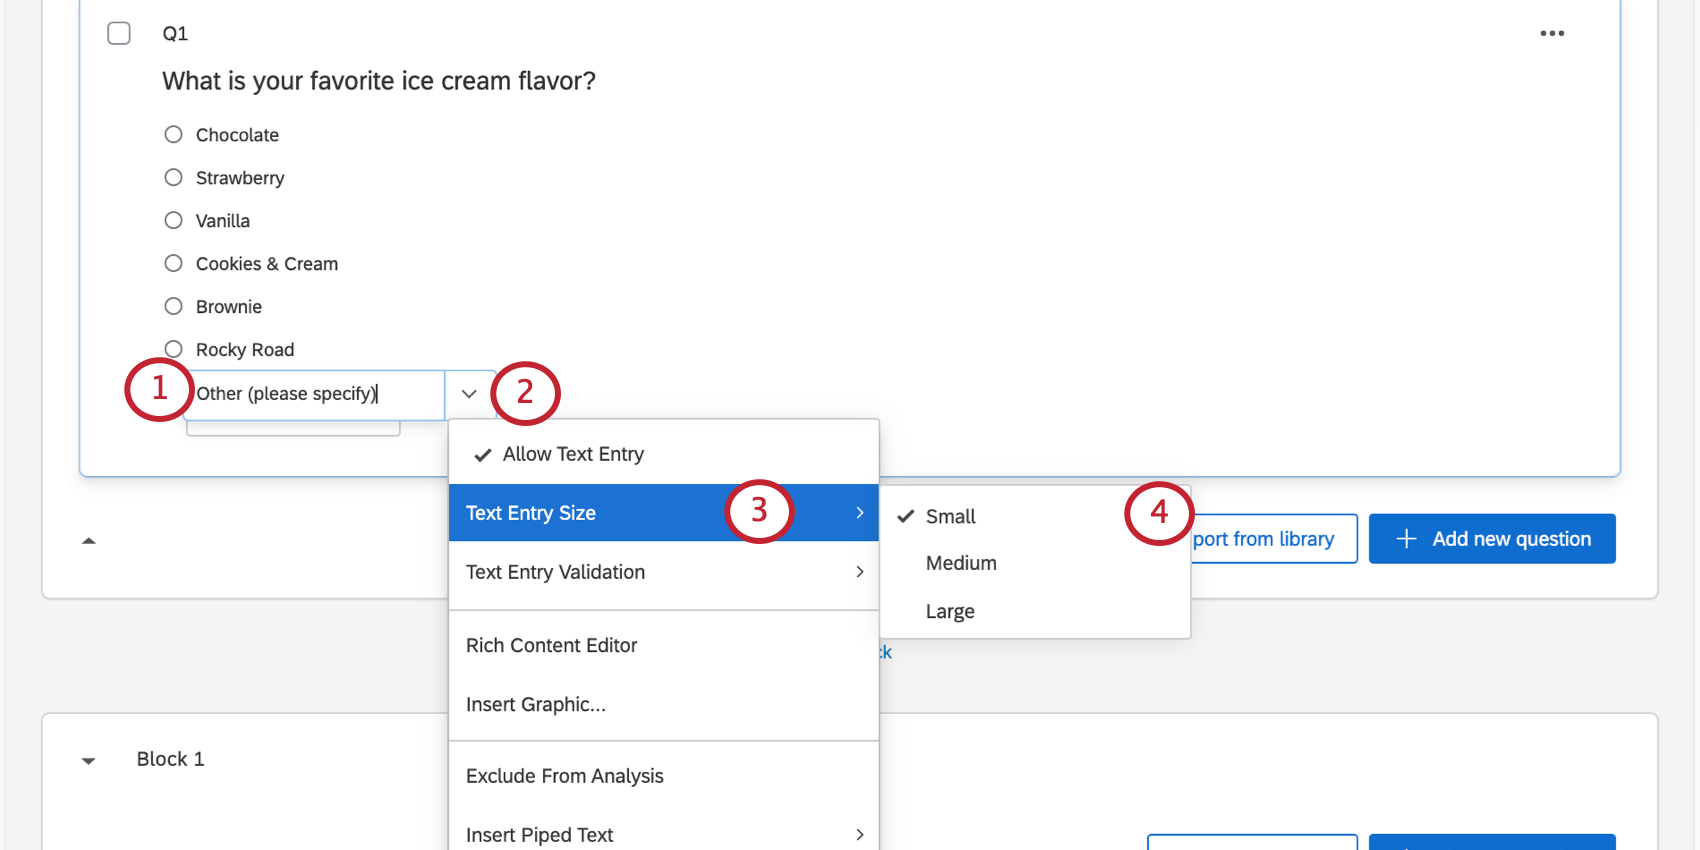 selecting the text entry size